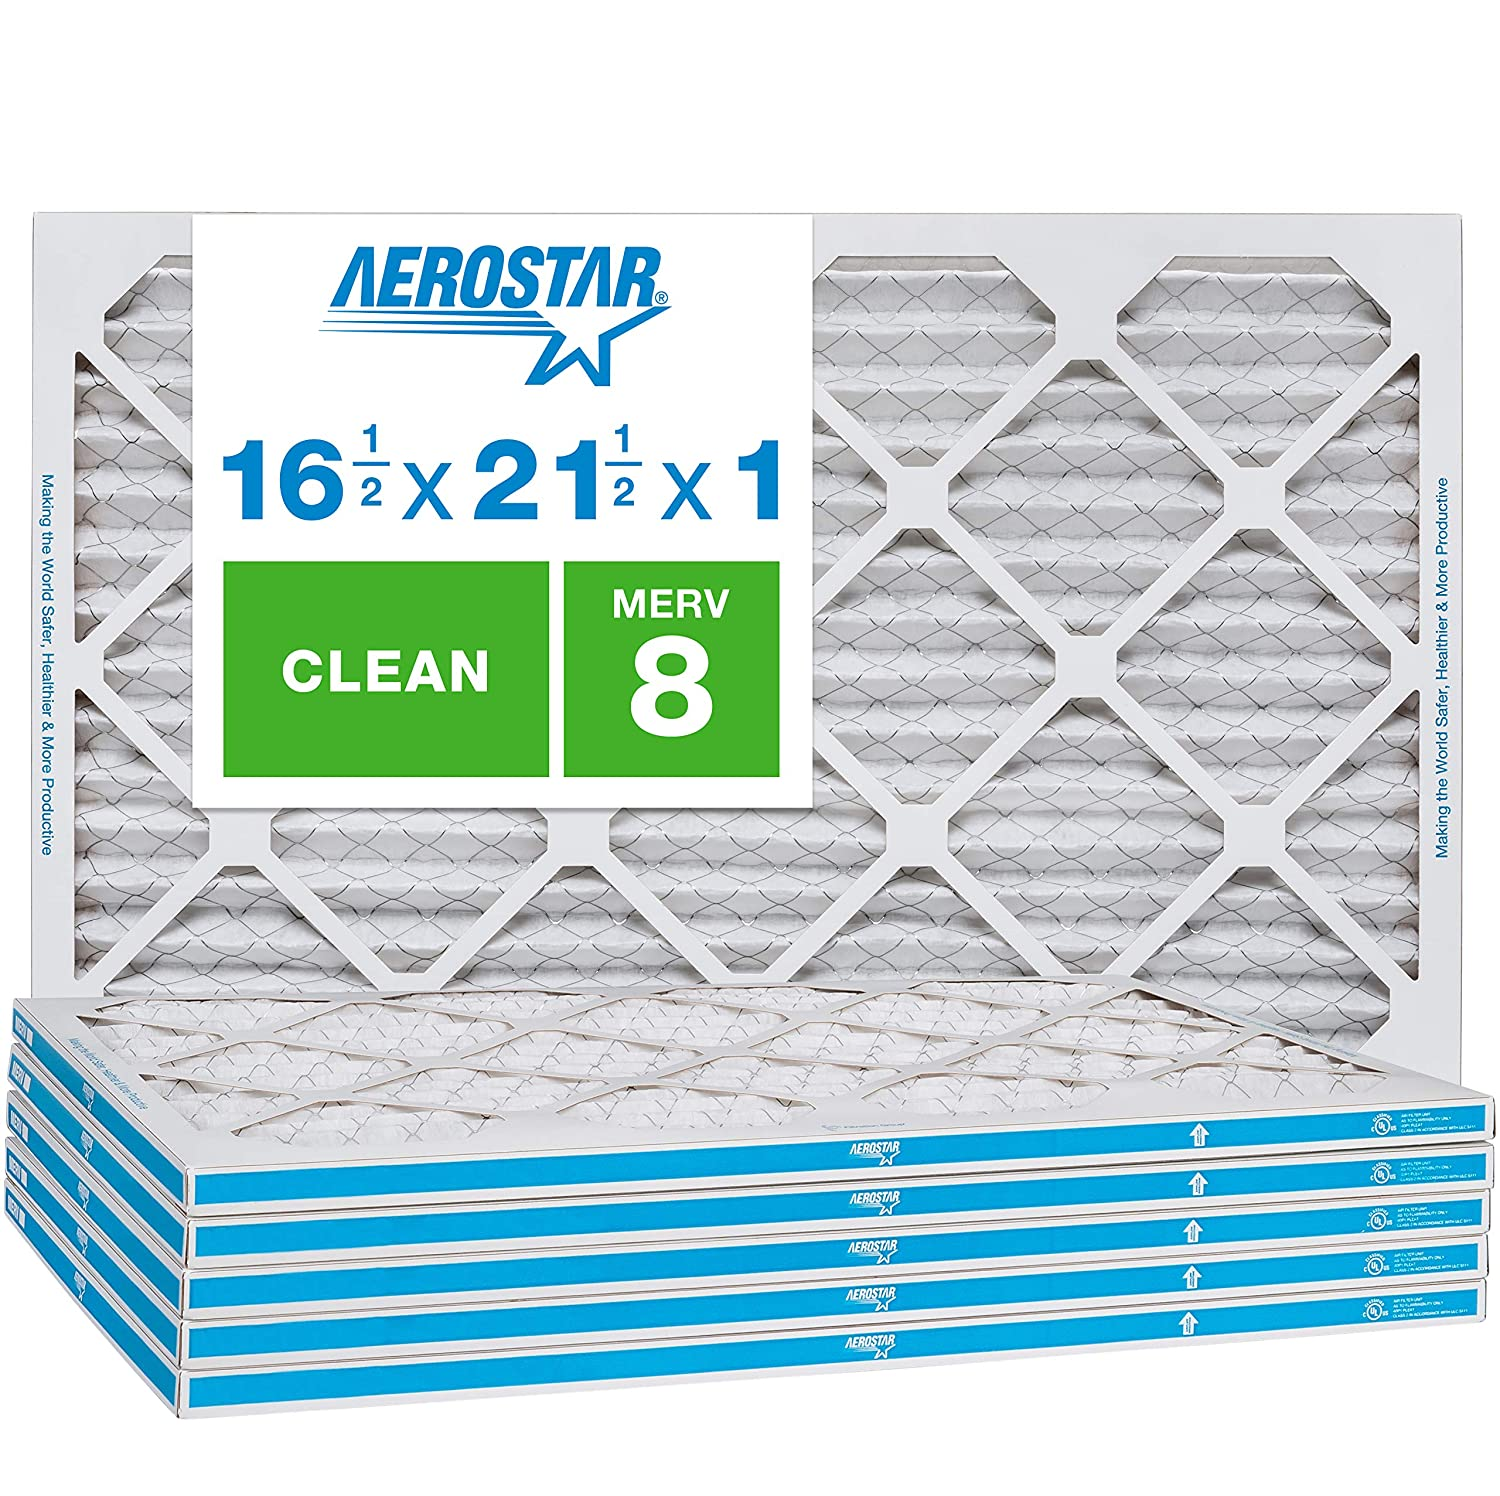 Aerostar Clean House 16 1/2x21 1/2x1 MERV 8 Pleated Air Filter, Made in the USA, 6-Pack